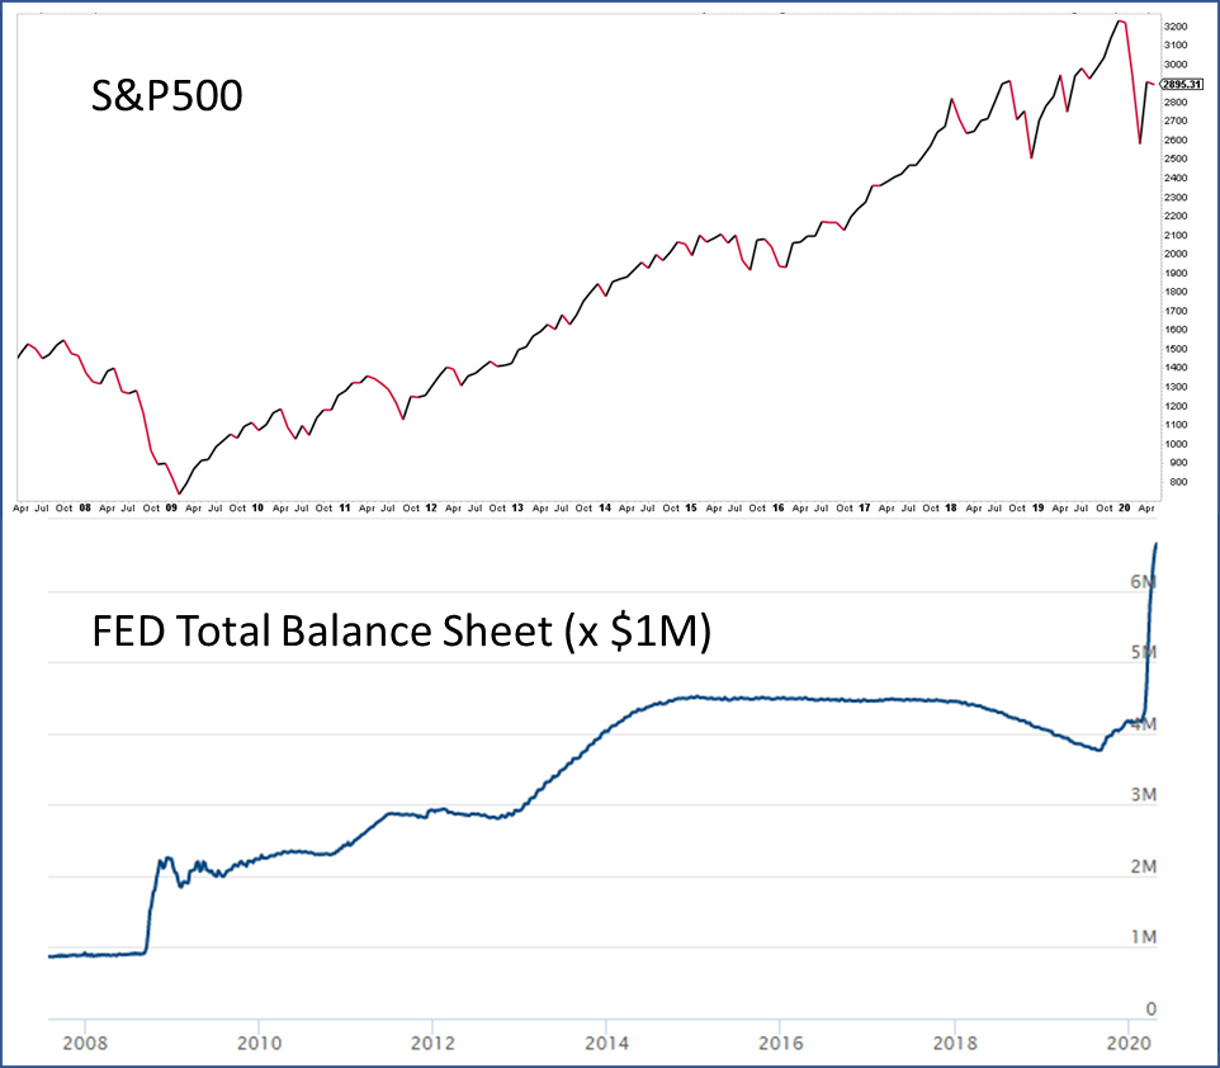 S&P500 April 2007 - To Date, & FED's Balance Sheet